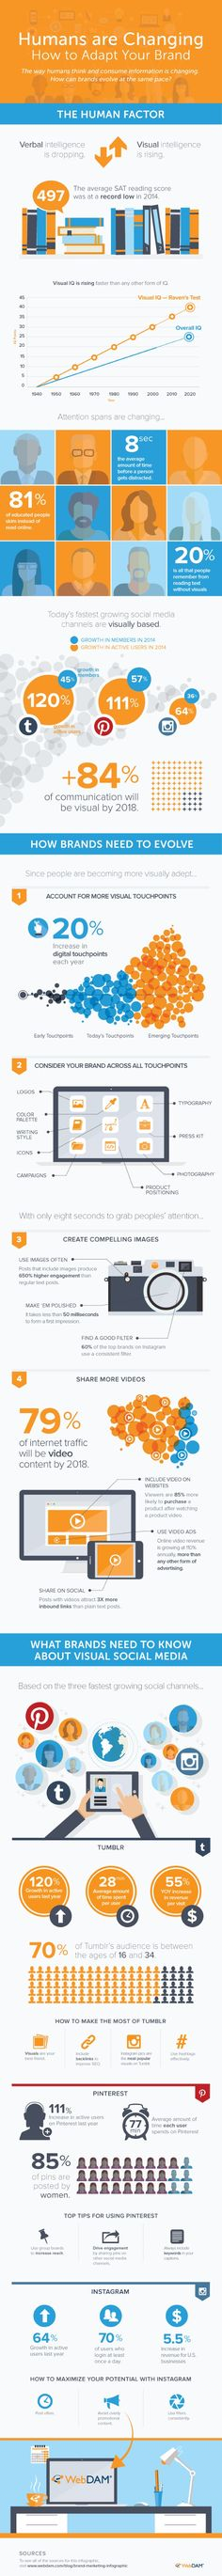 Visual Media Changes How Humans Consume Information (Infographic)   via @borntobesocial